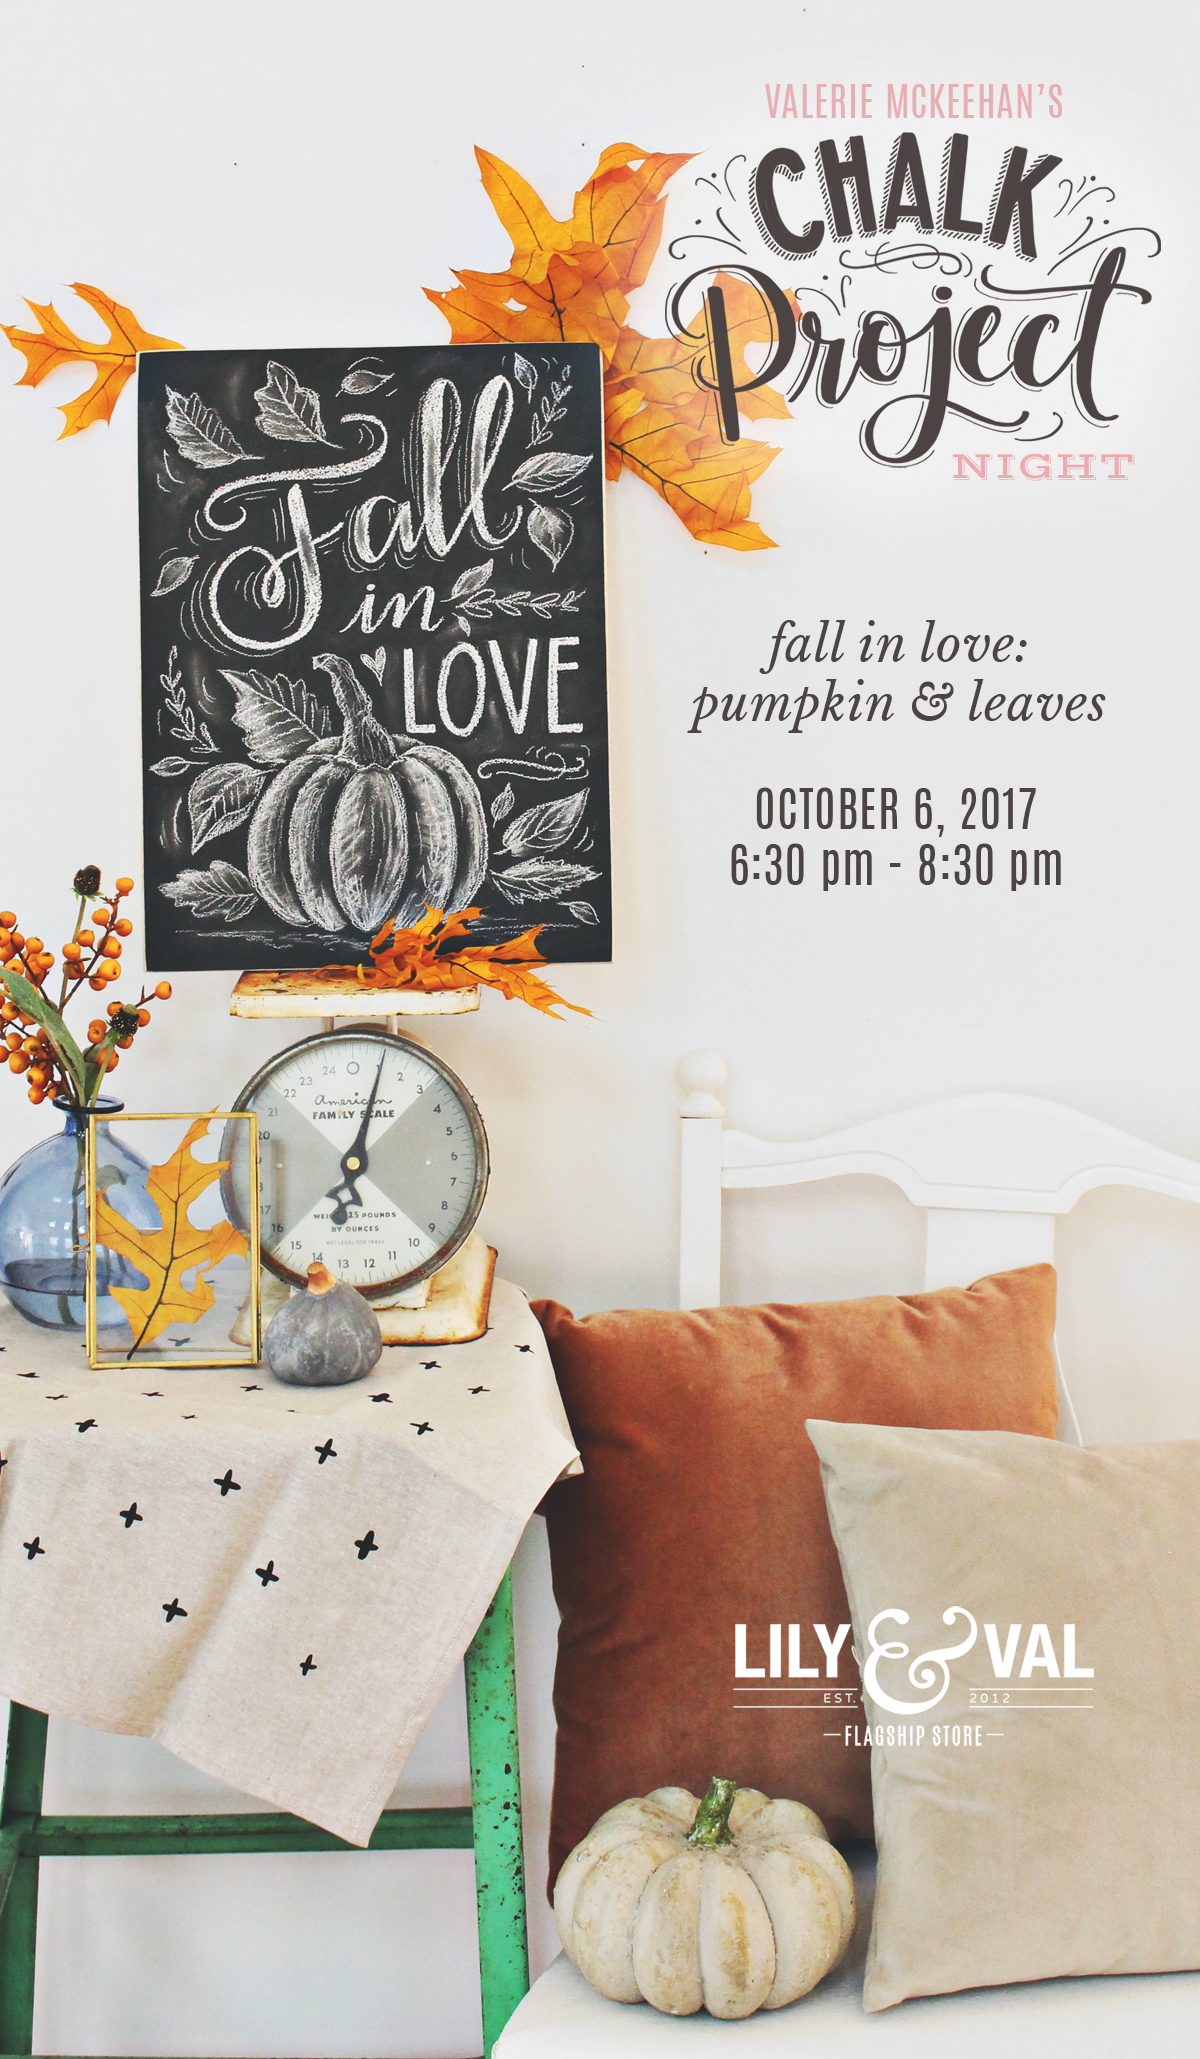 Walk through this Fall in Love Pumpkin and Leaves Chalk art design with Valerie McKeehan of Lily & Val